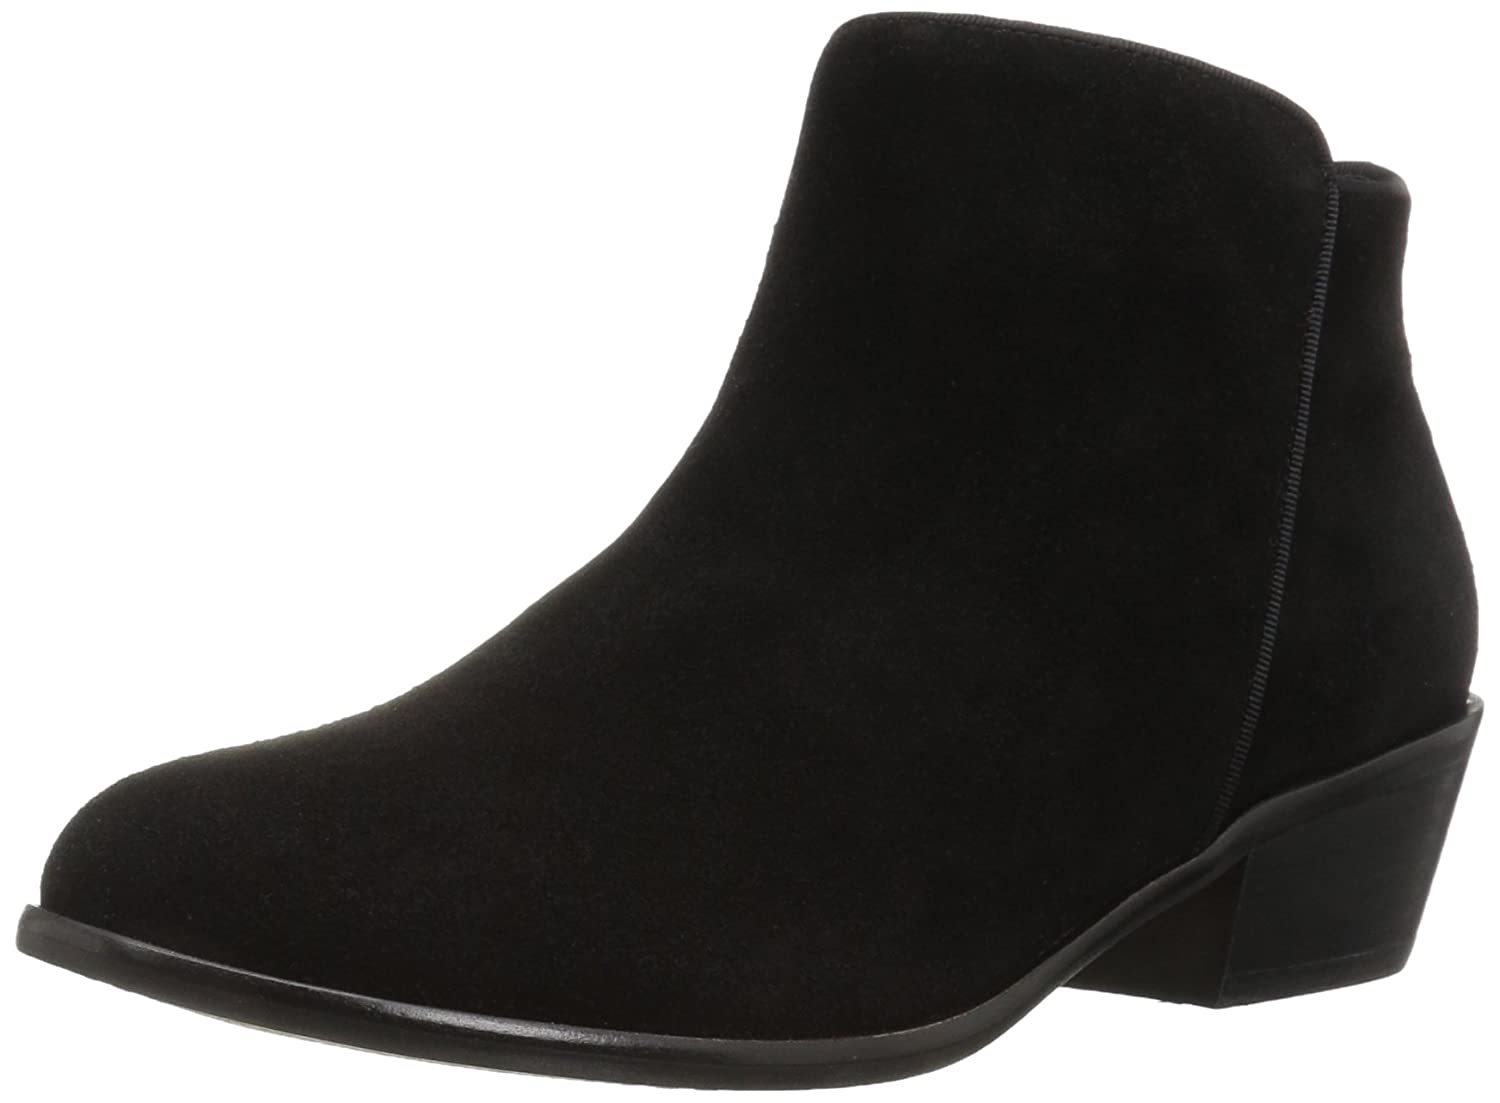 206 Collective Women's Magnolia Low Heel Ankle Bootie B01MZGNYP4 5 B(M) US|Black Suede